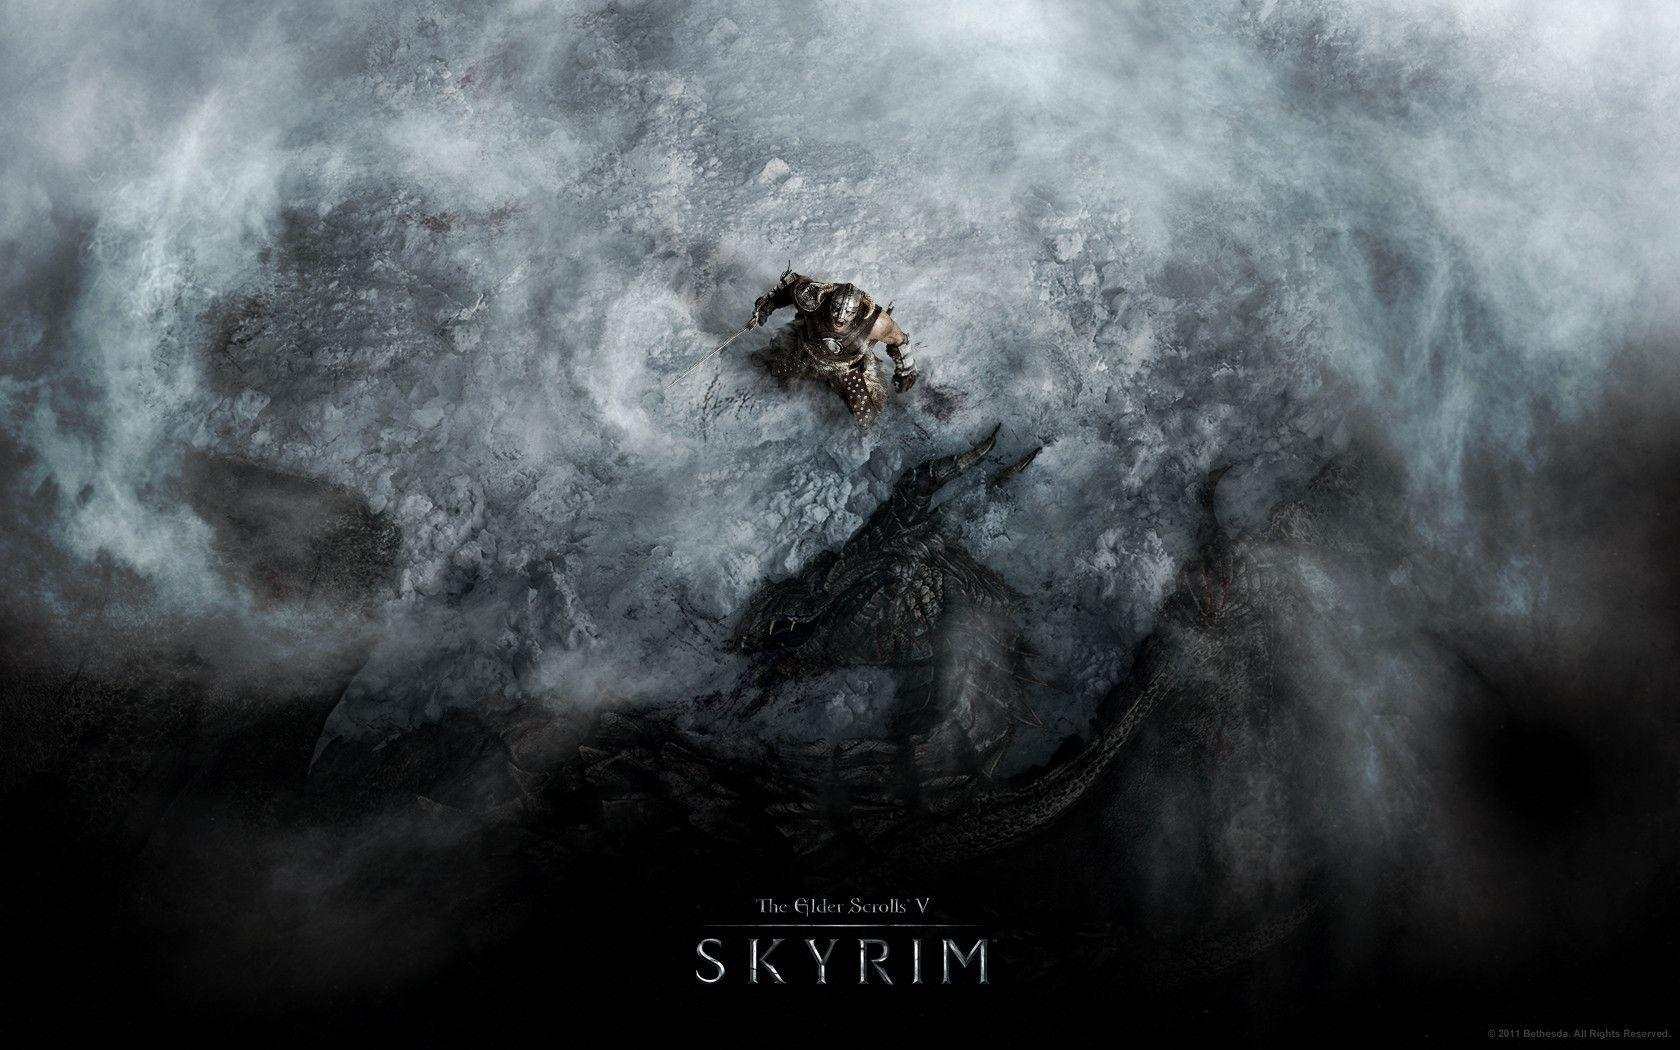 The Elder Scrolls Wallpaper: Elder Scrolls V Skyrim Wallpapers